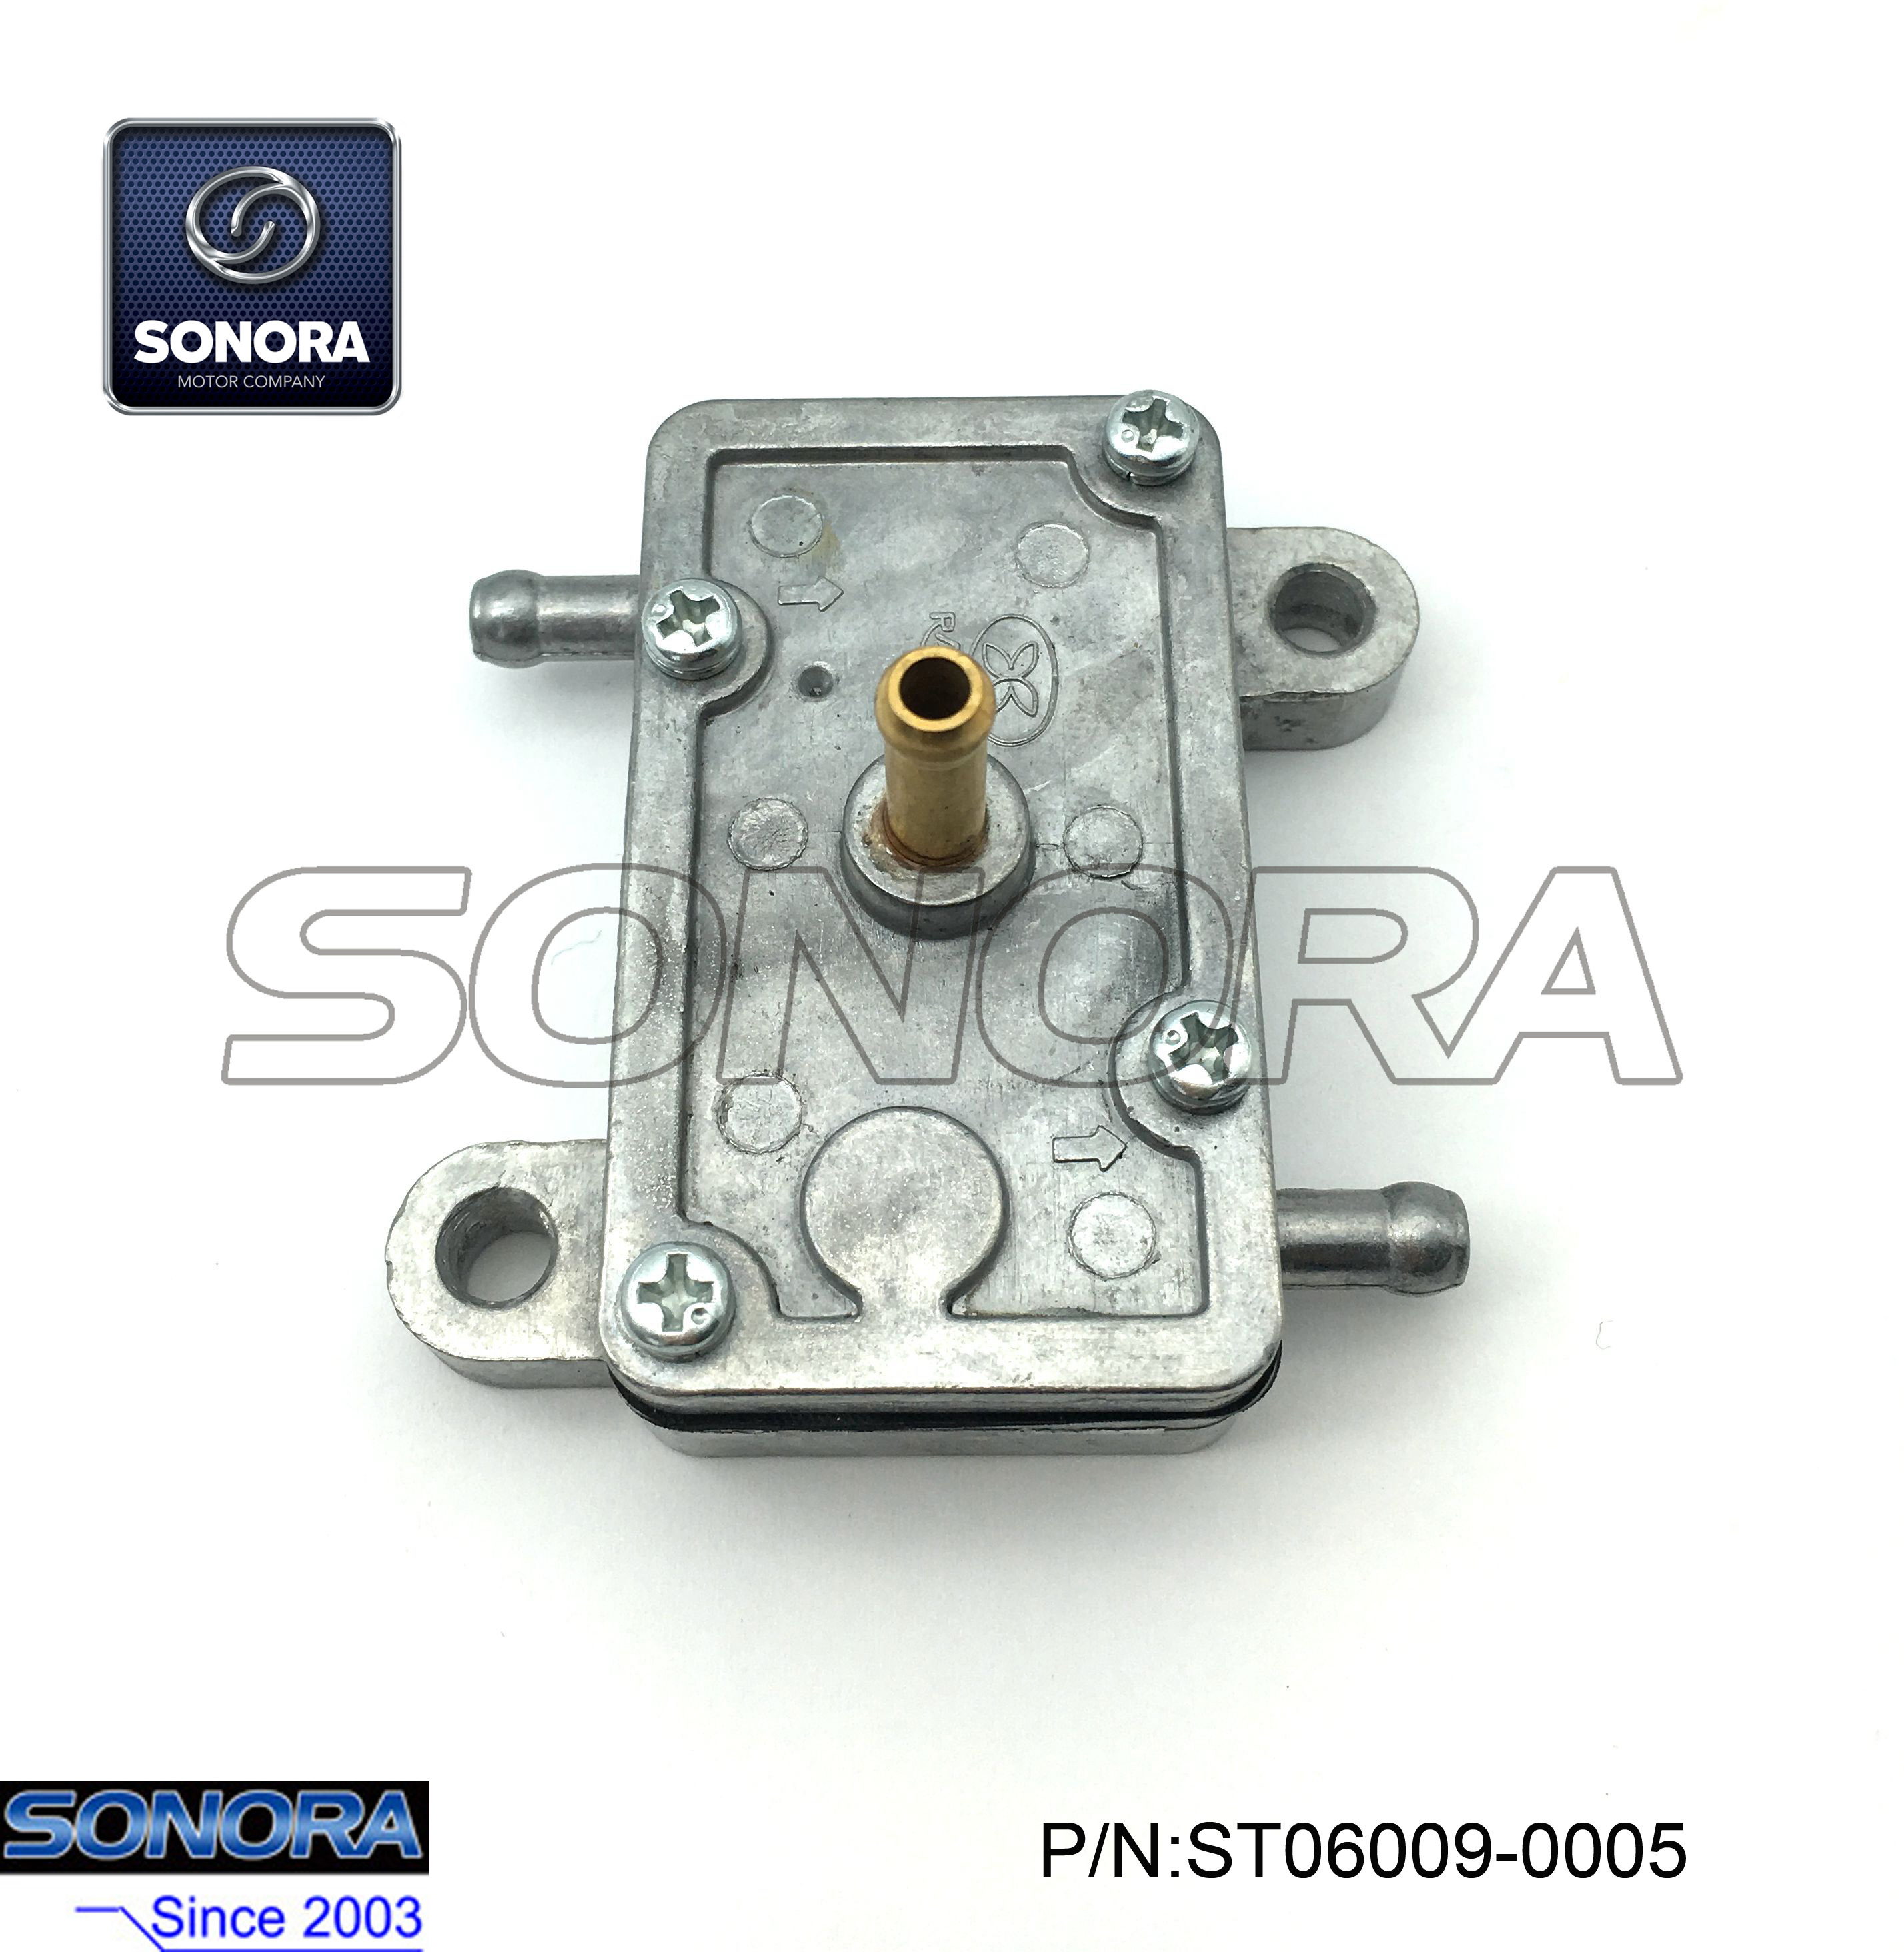 ST06009-0005 TYPHOON Fuel Switch Assy.